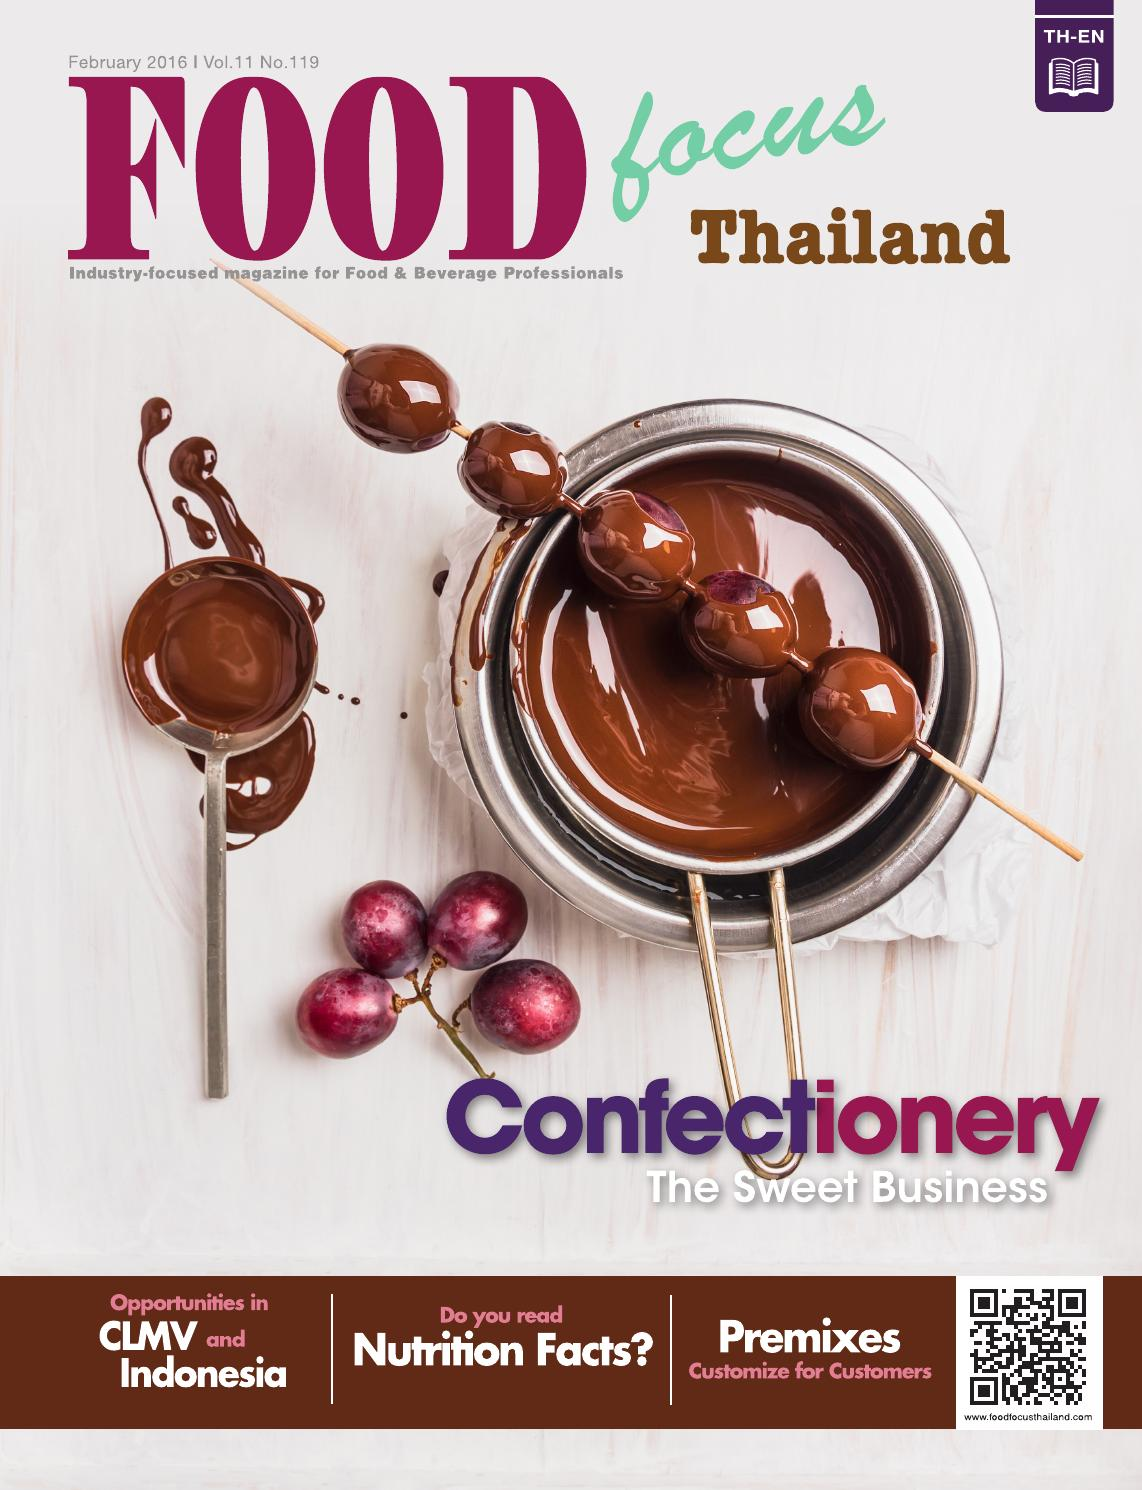 Foodfocusthailand no 119 February 16 by Food Focus Thailand